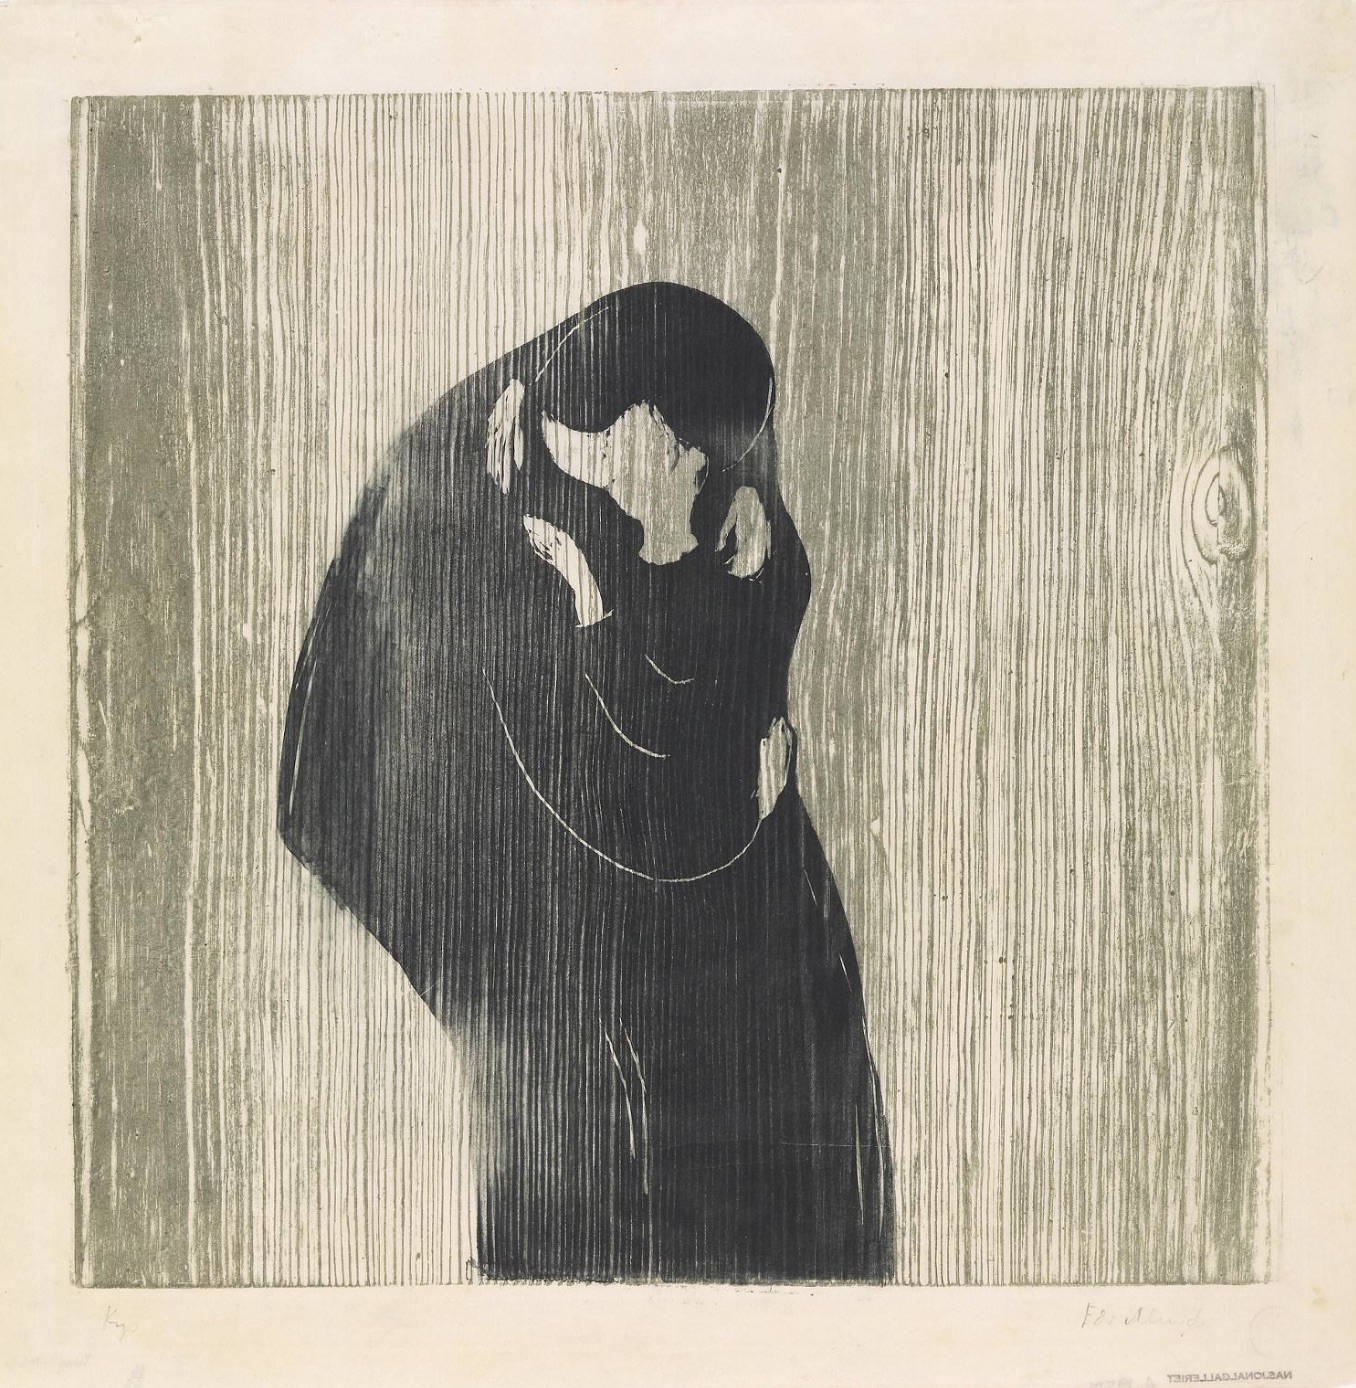 Edvard Munch, The Kiss IV , 1902, two-colour woodcut, 47.1 x 47.6 cm,National Museum of Art, Architecture and Design, Oslo.